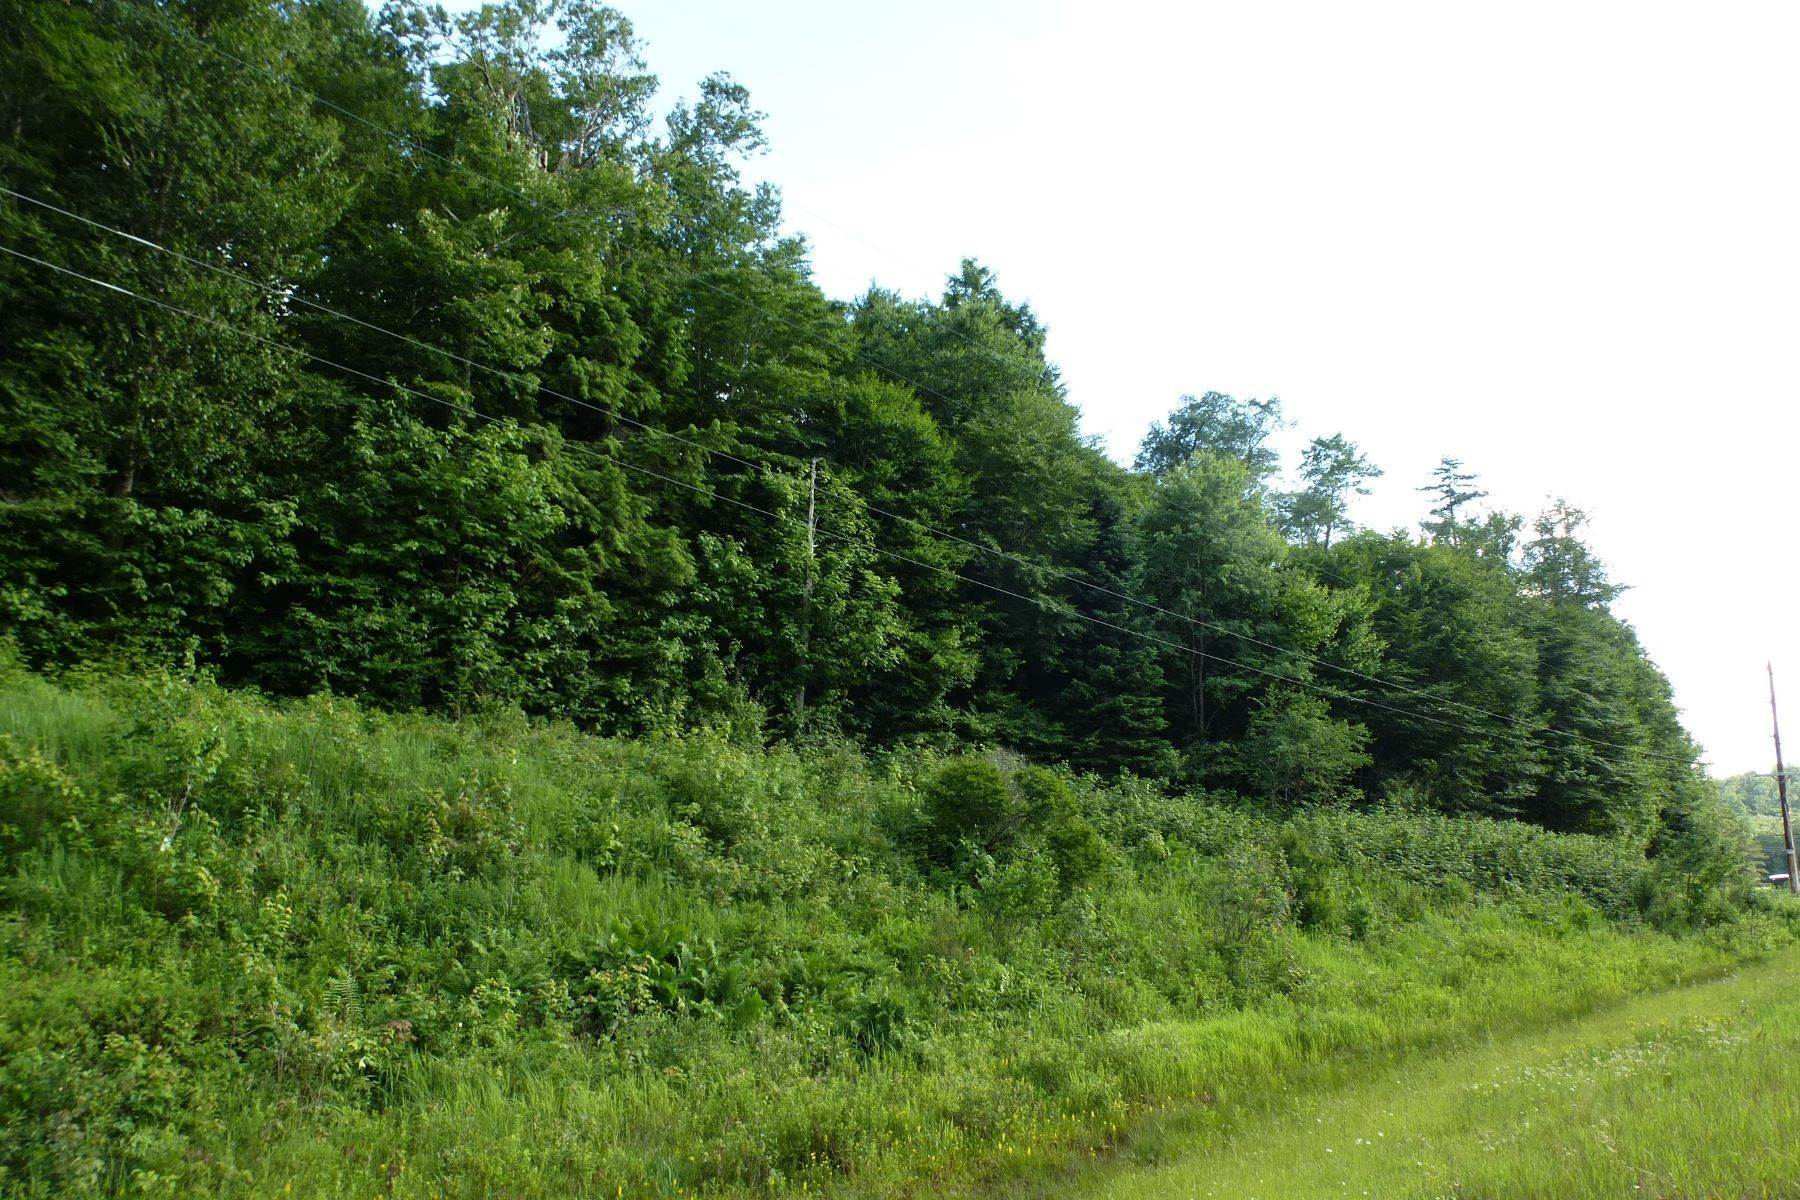 Land for Sale at State Route 28 Building Lot 00 State Route 28 Thendara, New York 13472 United States